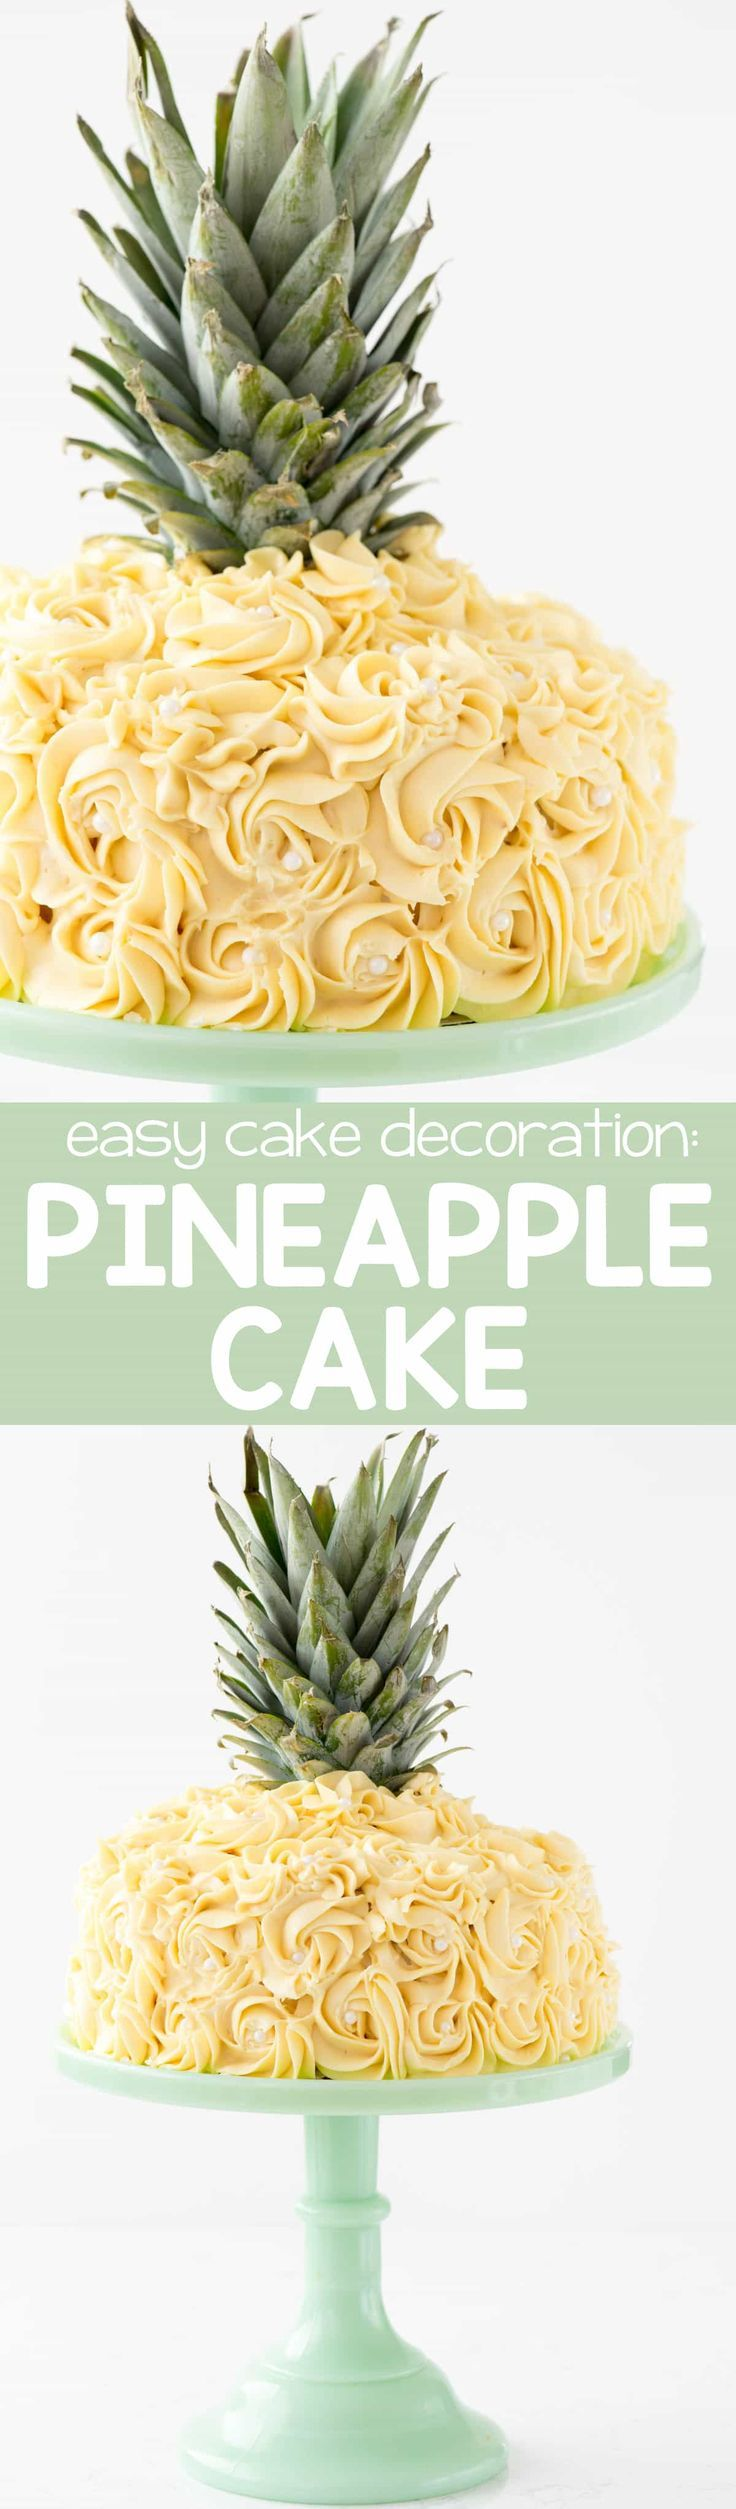 Pineapple Cake Decorating Tutorial Crazy For Crust Recipe Pineapple Cake Cake Decorating Cupcake Cakes